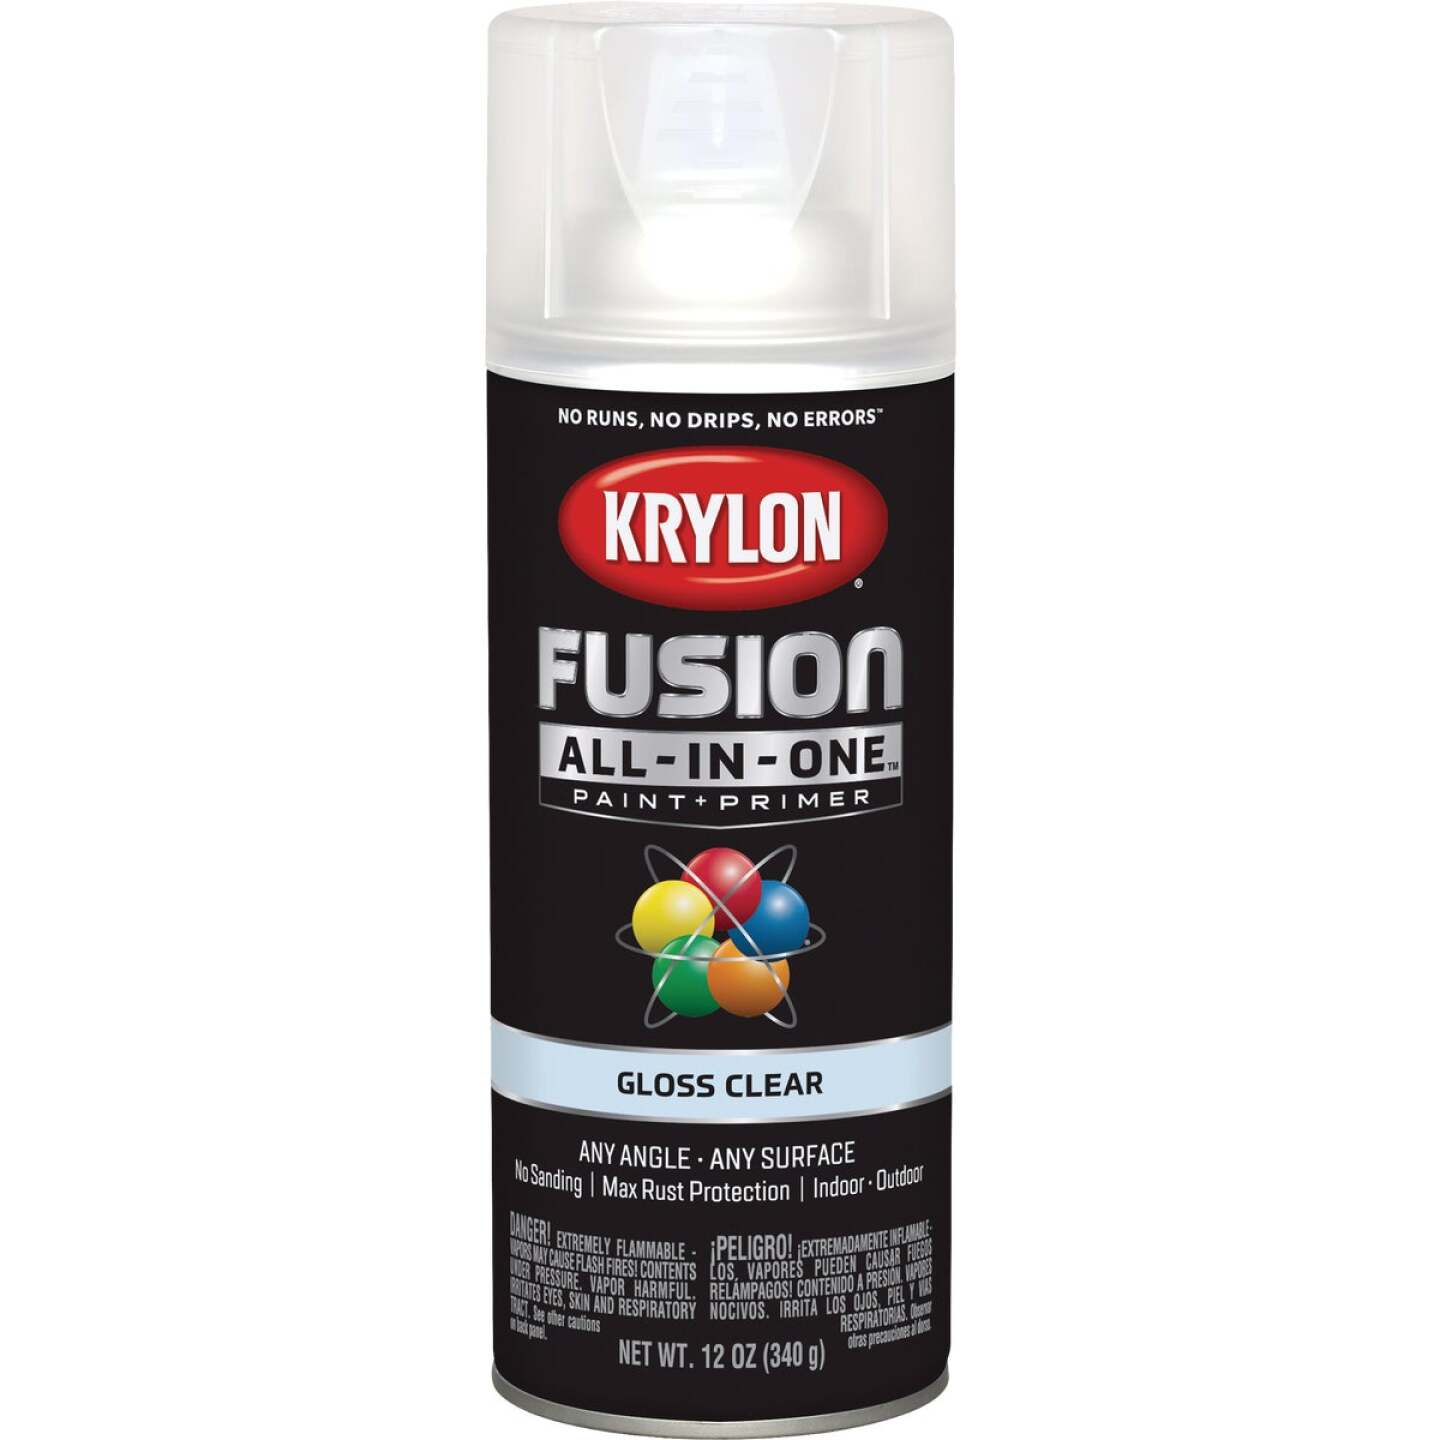 Krylon Fusion All-In-One Gloss Spray Paint & Primer, Clear Image 1